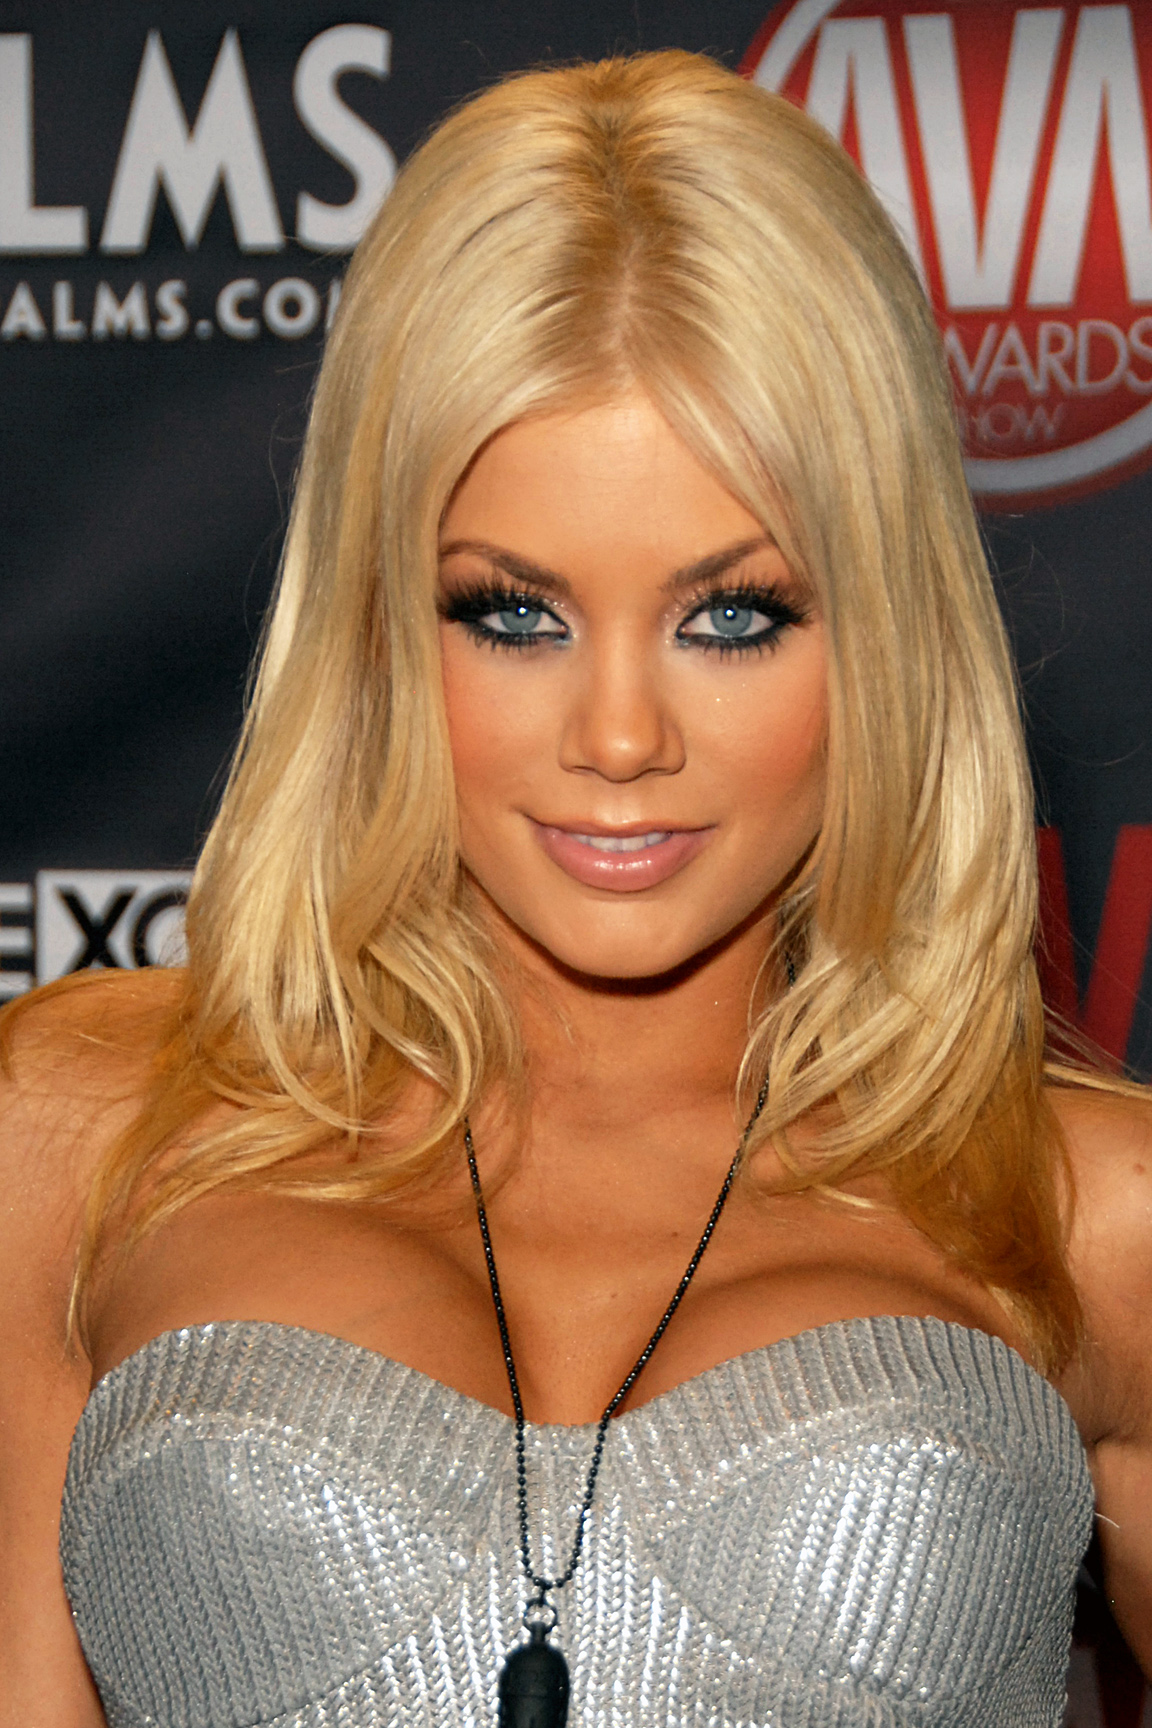 Riley Steele